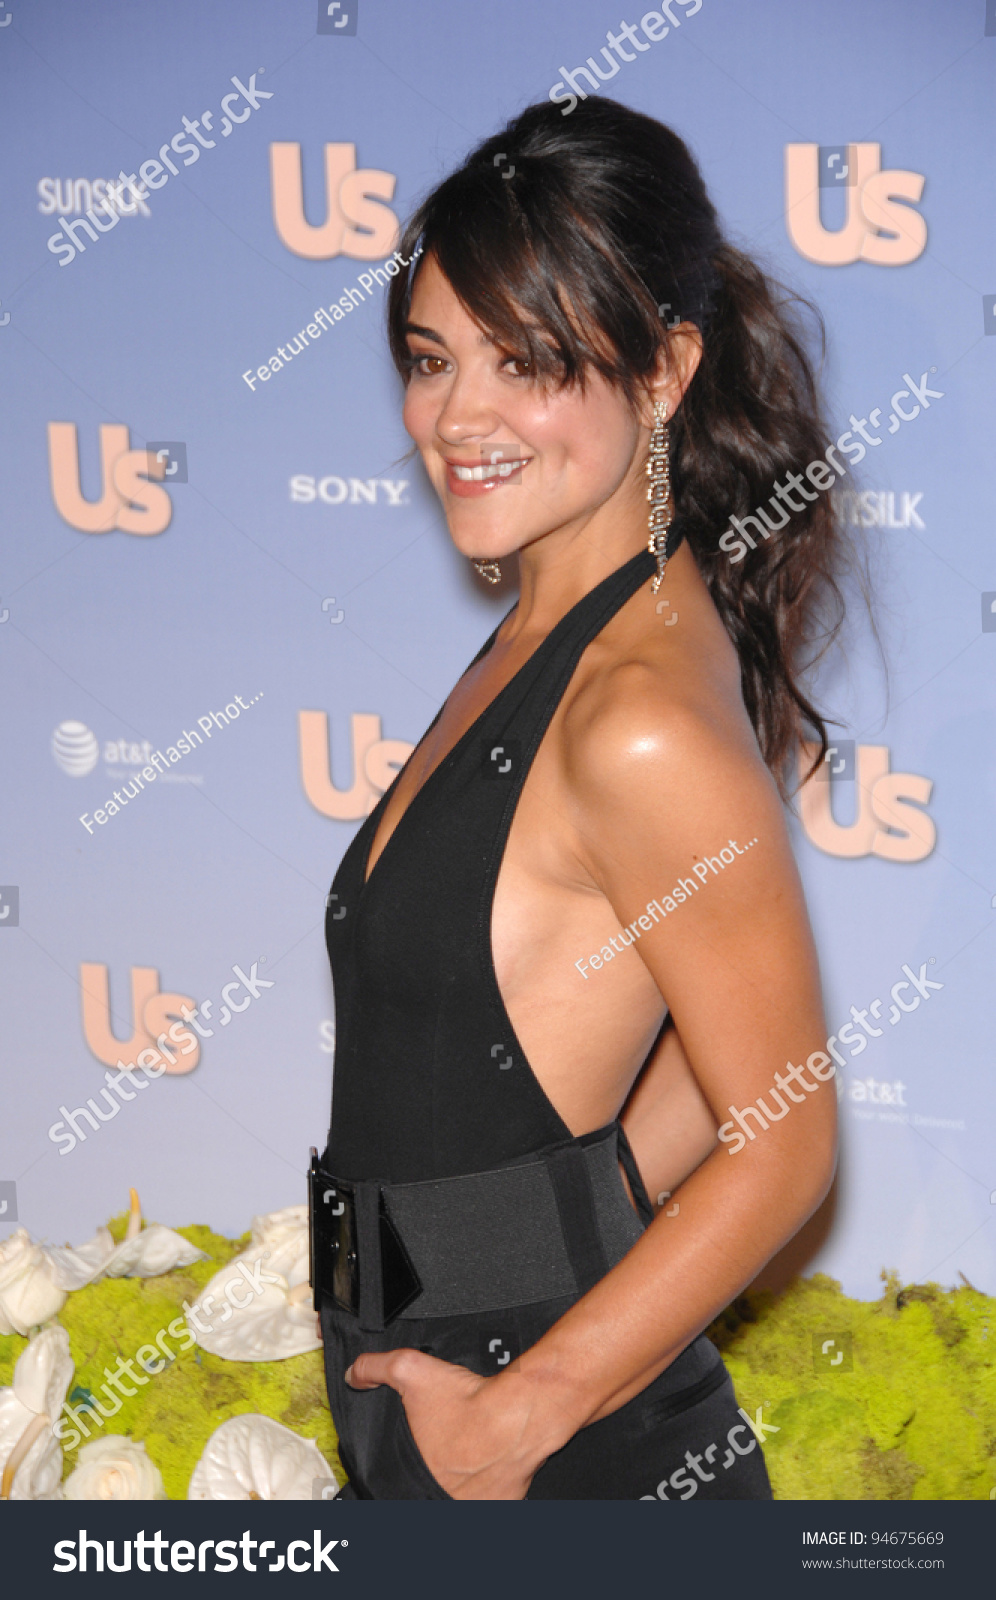 Camille Guaty Us Weekly Magazines Hot Stock Photo 94675669 ...